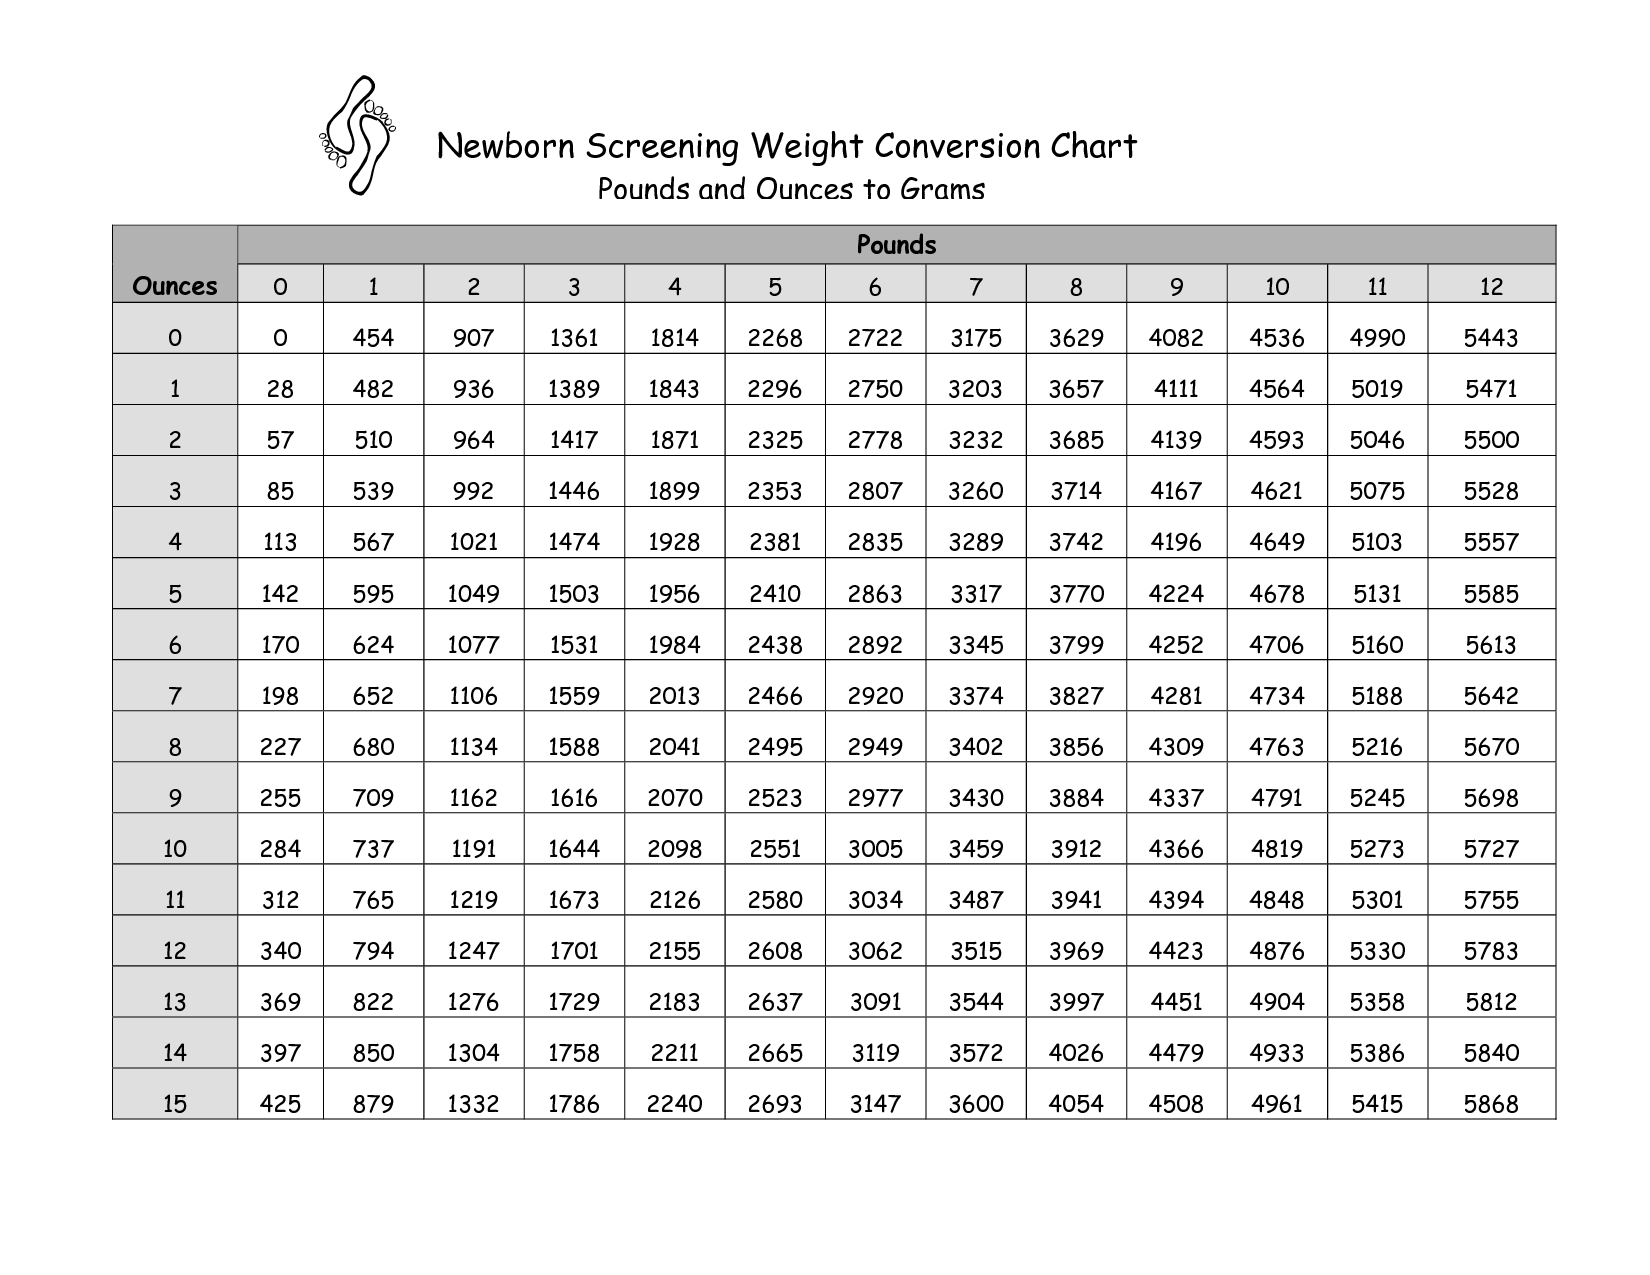 Pounds To Grams Conversion Chart Gram Conversion Chart Weight Conversion Chart Grams To Ounces